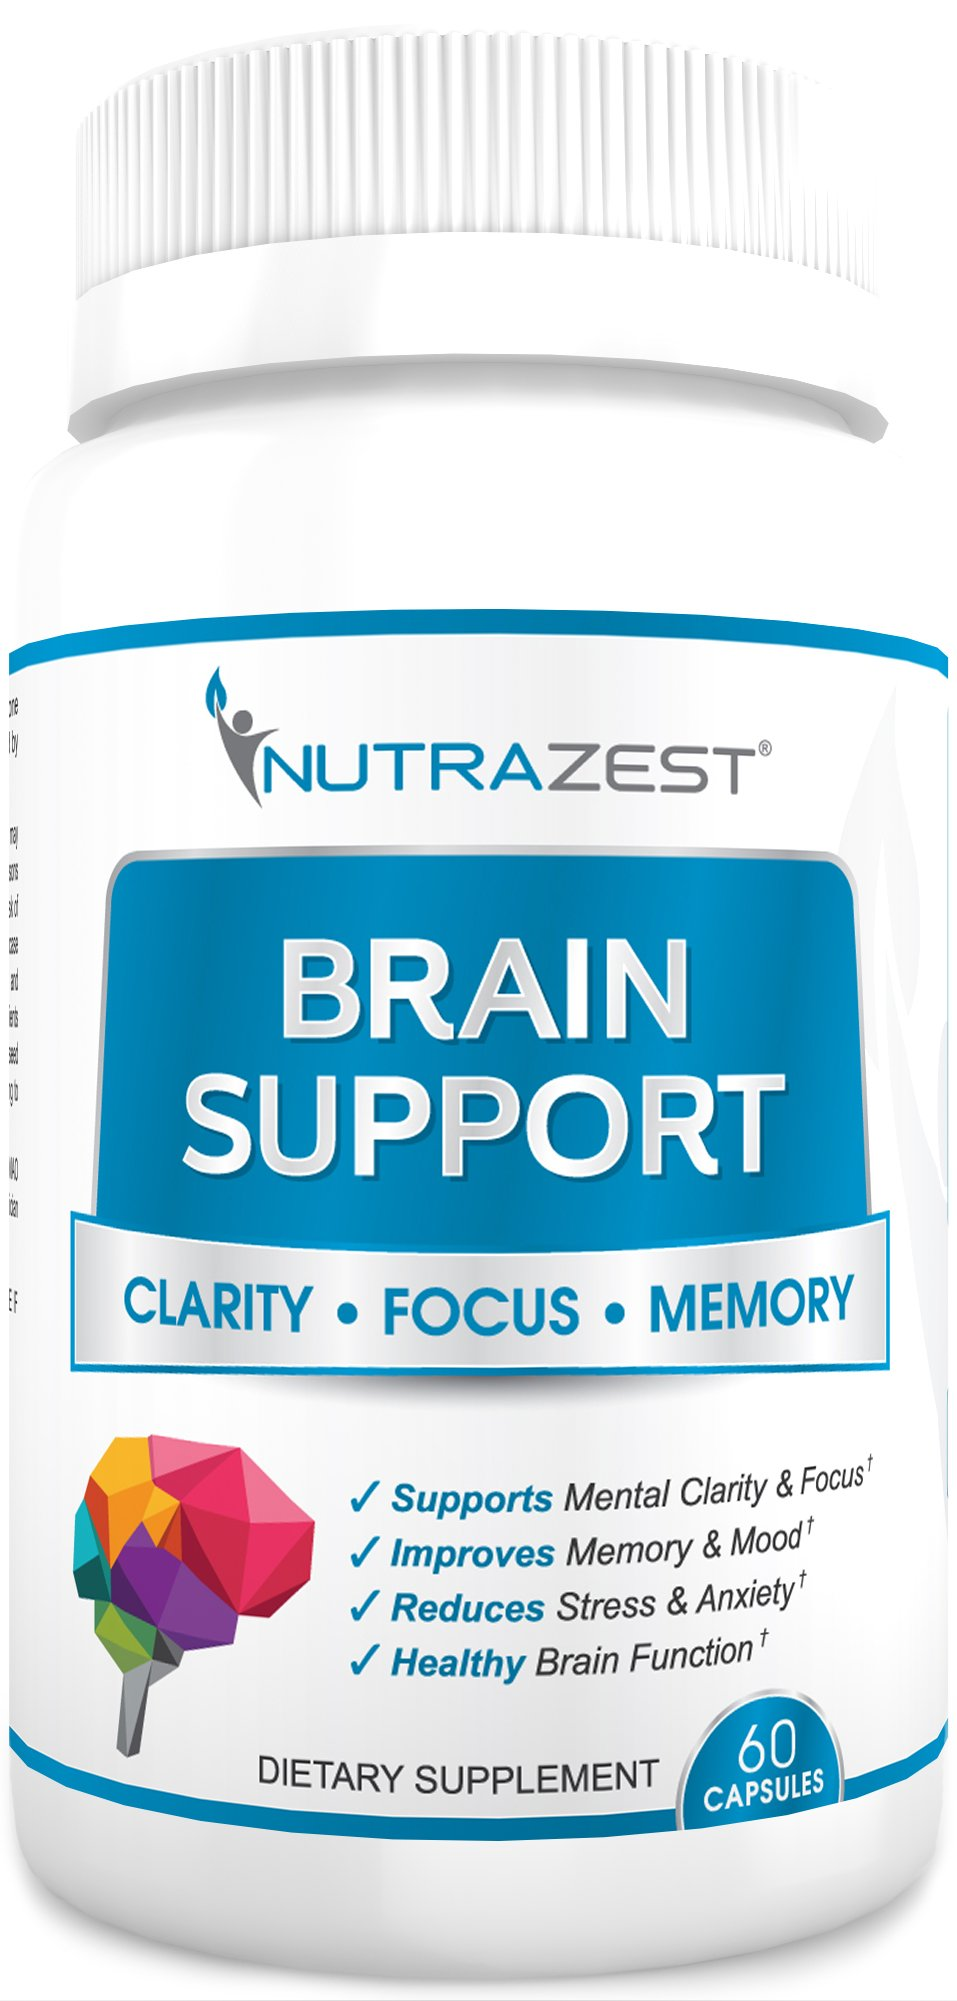 Nutrazest Brain Support - Nootropics Supplement to Aid Focus and Clarity, Support Memory, Sustain Physical Energy and Maintain Mood - with Ginkgo Biloba, St. John's Wort, and DMAE - 60 Capsules by Nutrazest